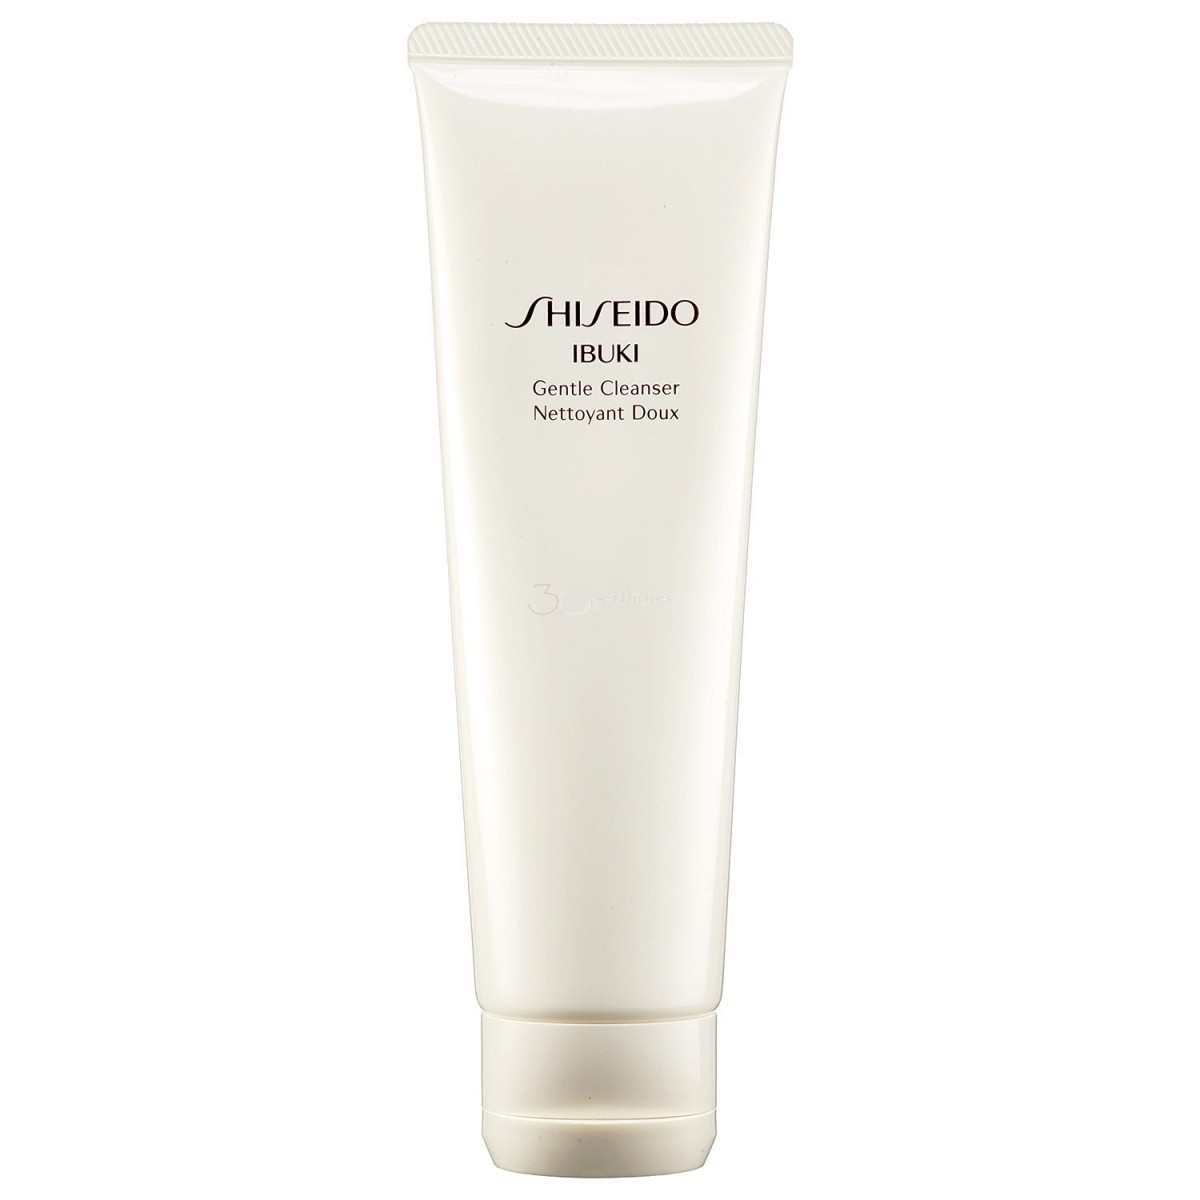 Shiseido - Ibuki - Gentle Cleanser - 125 ml